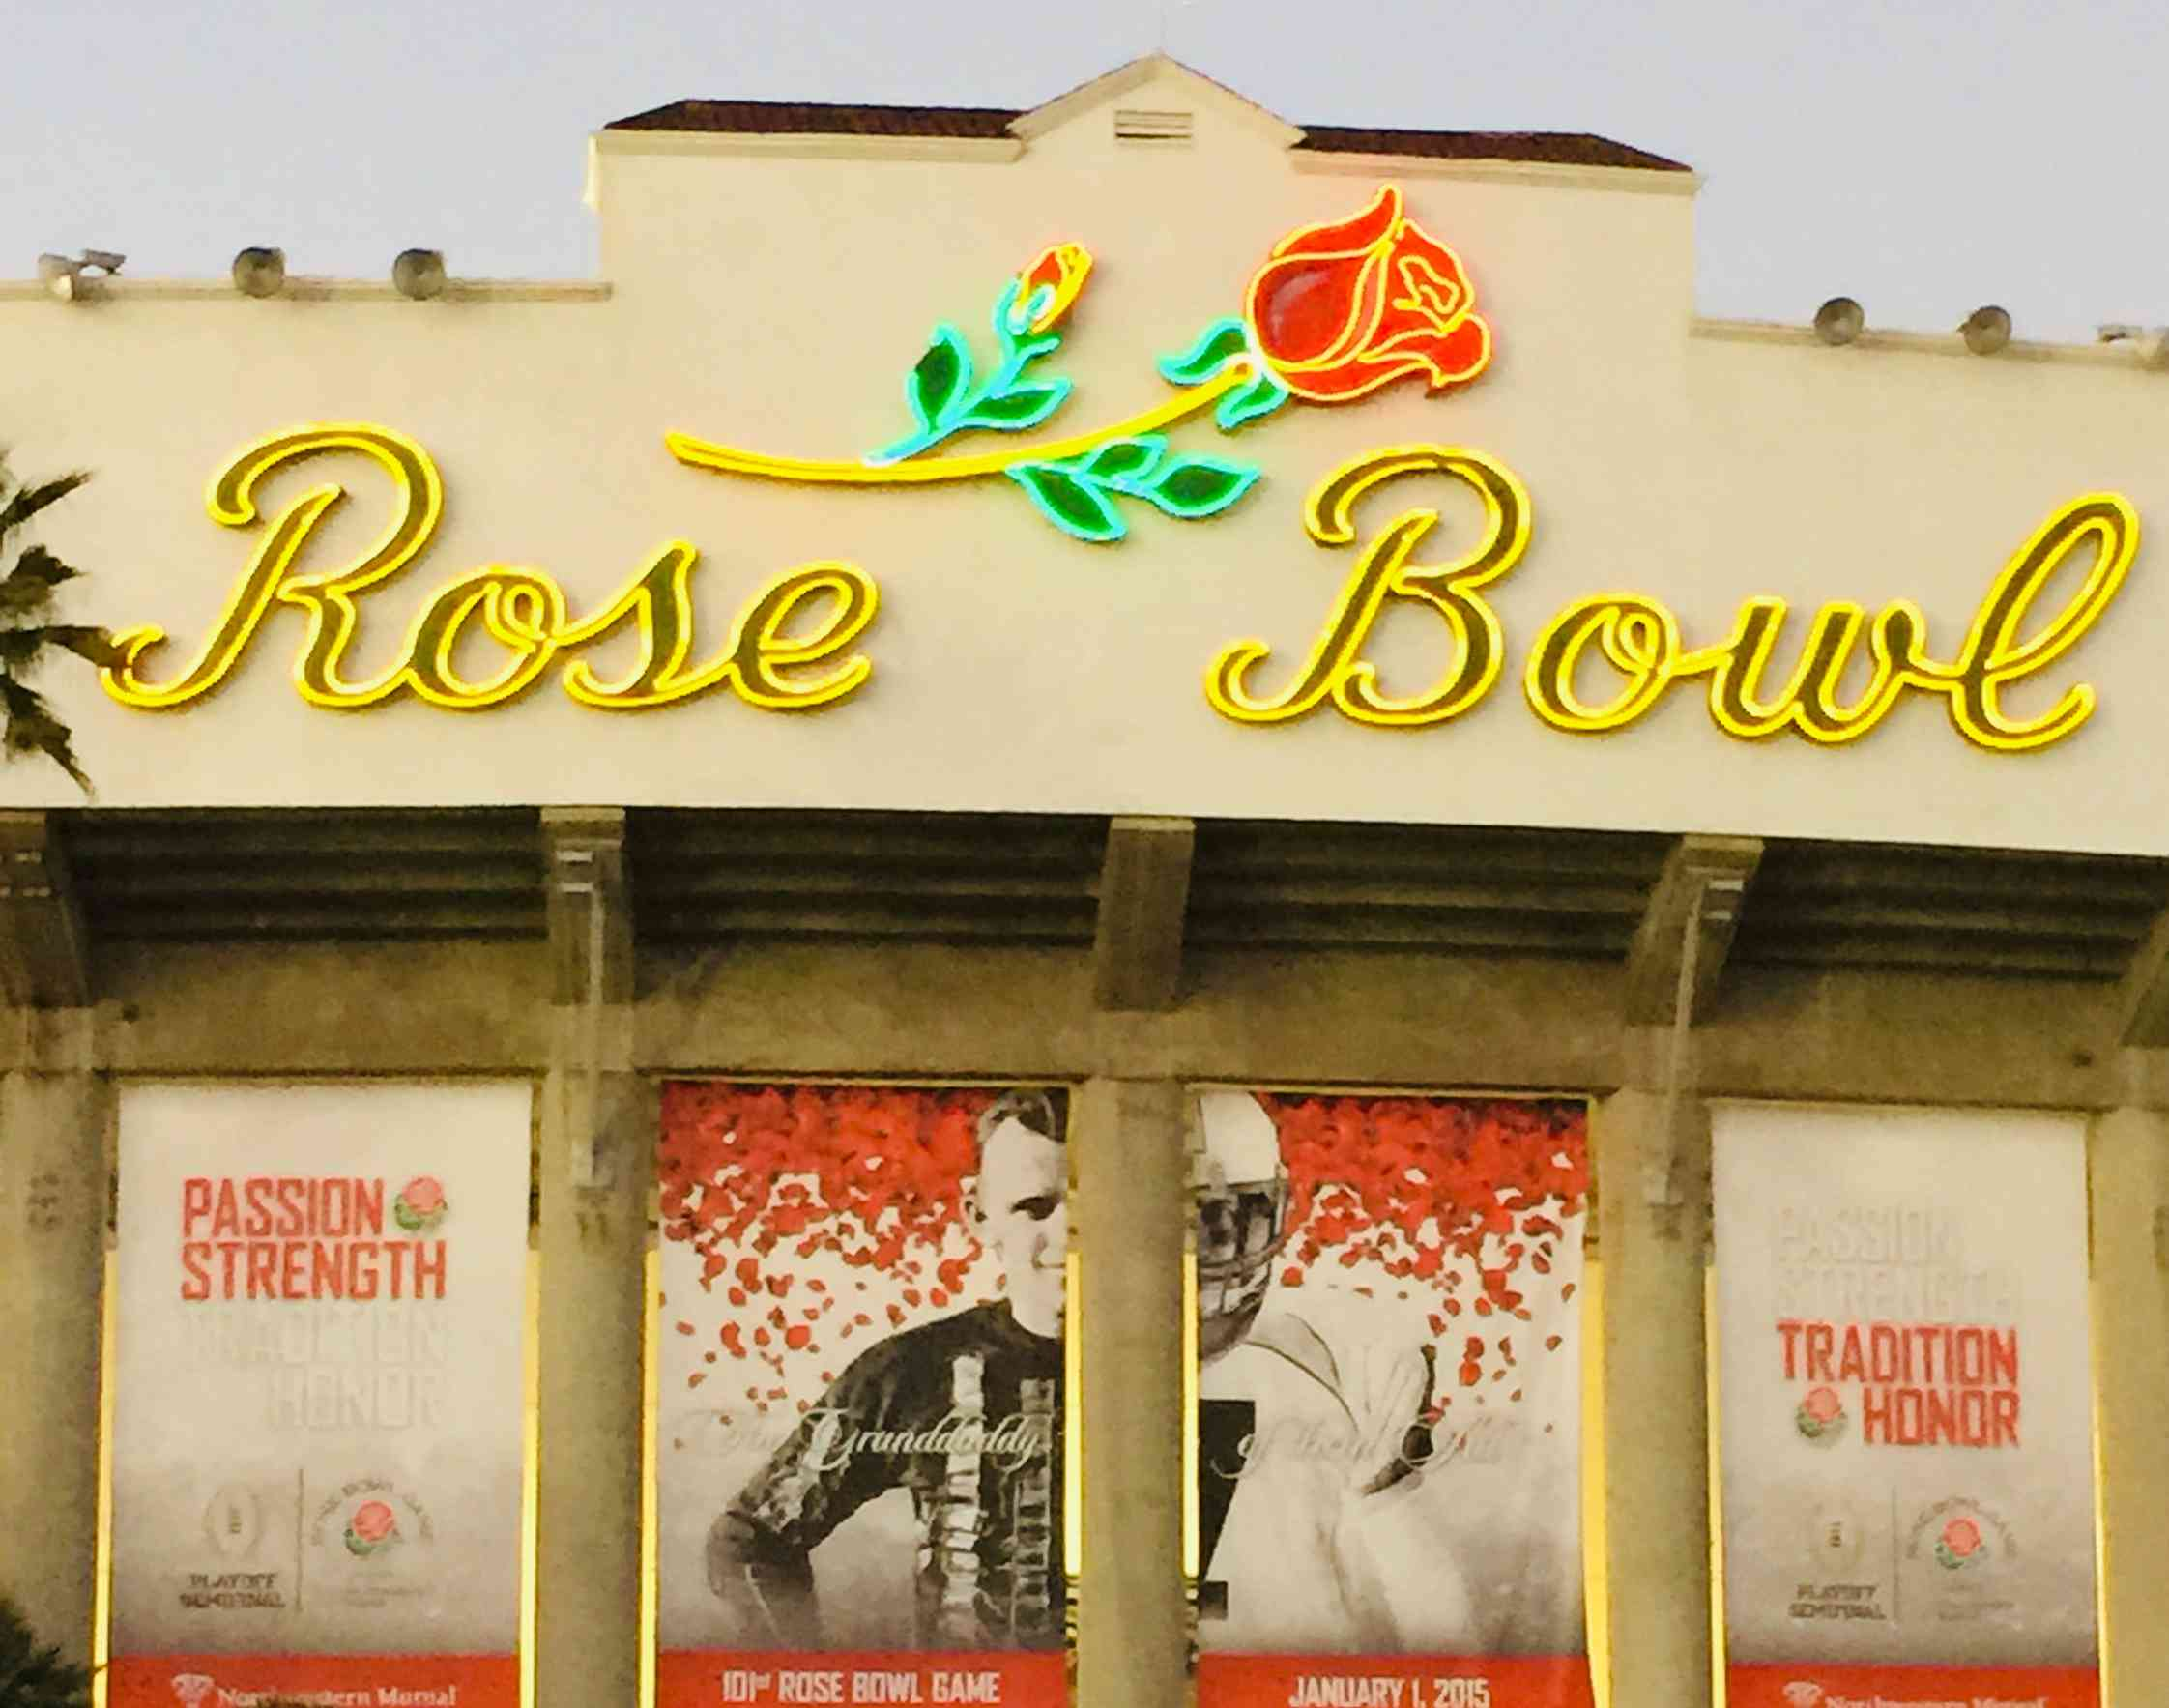 The Rose Bowl Stadium